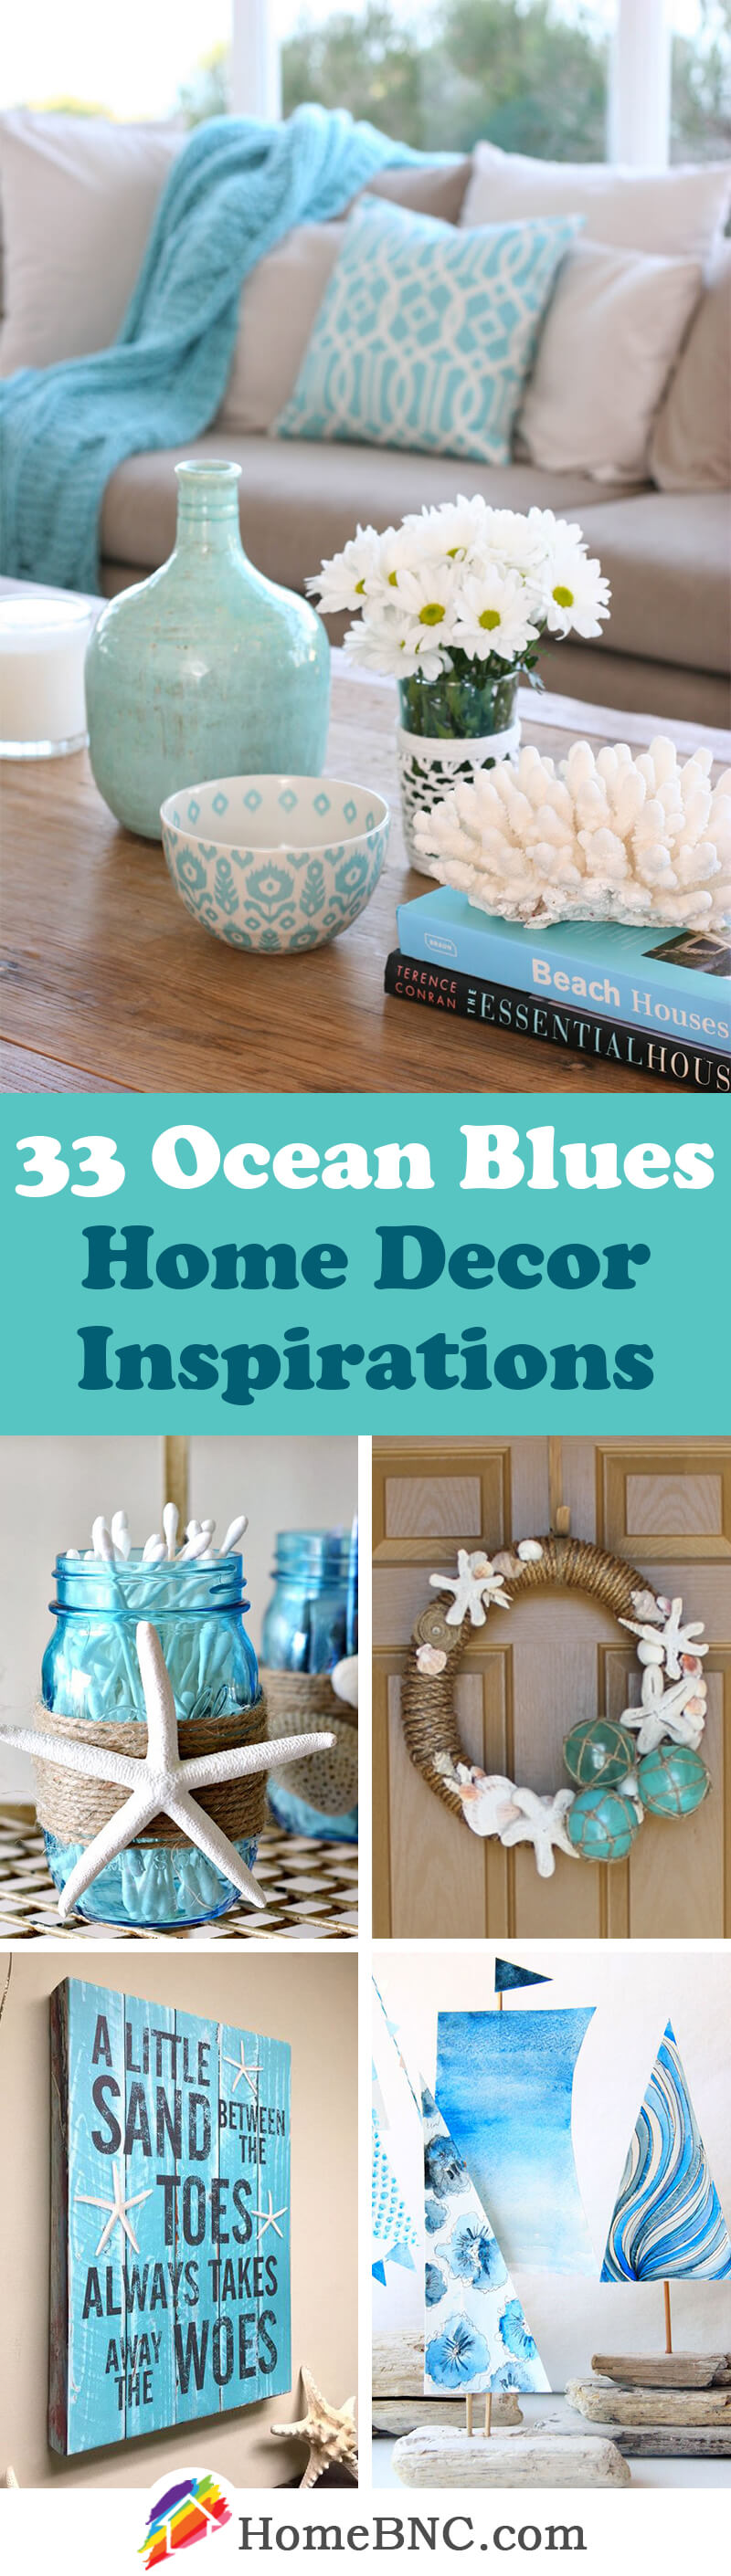 Ocean Blues Home Decor Inspiration Projects